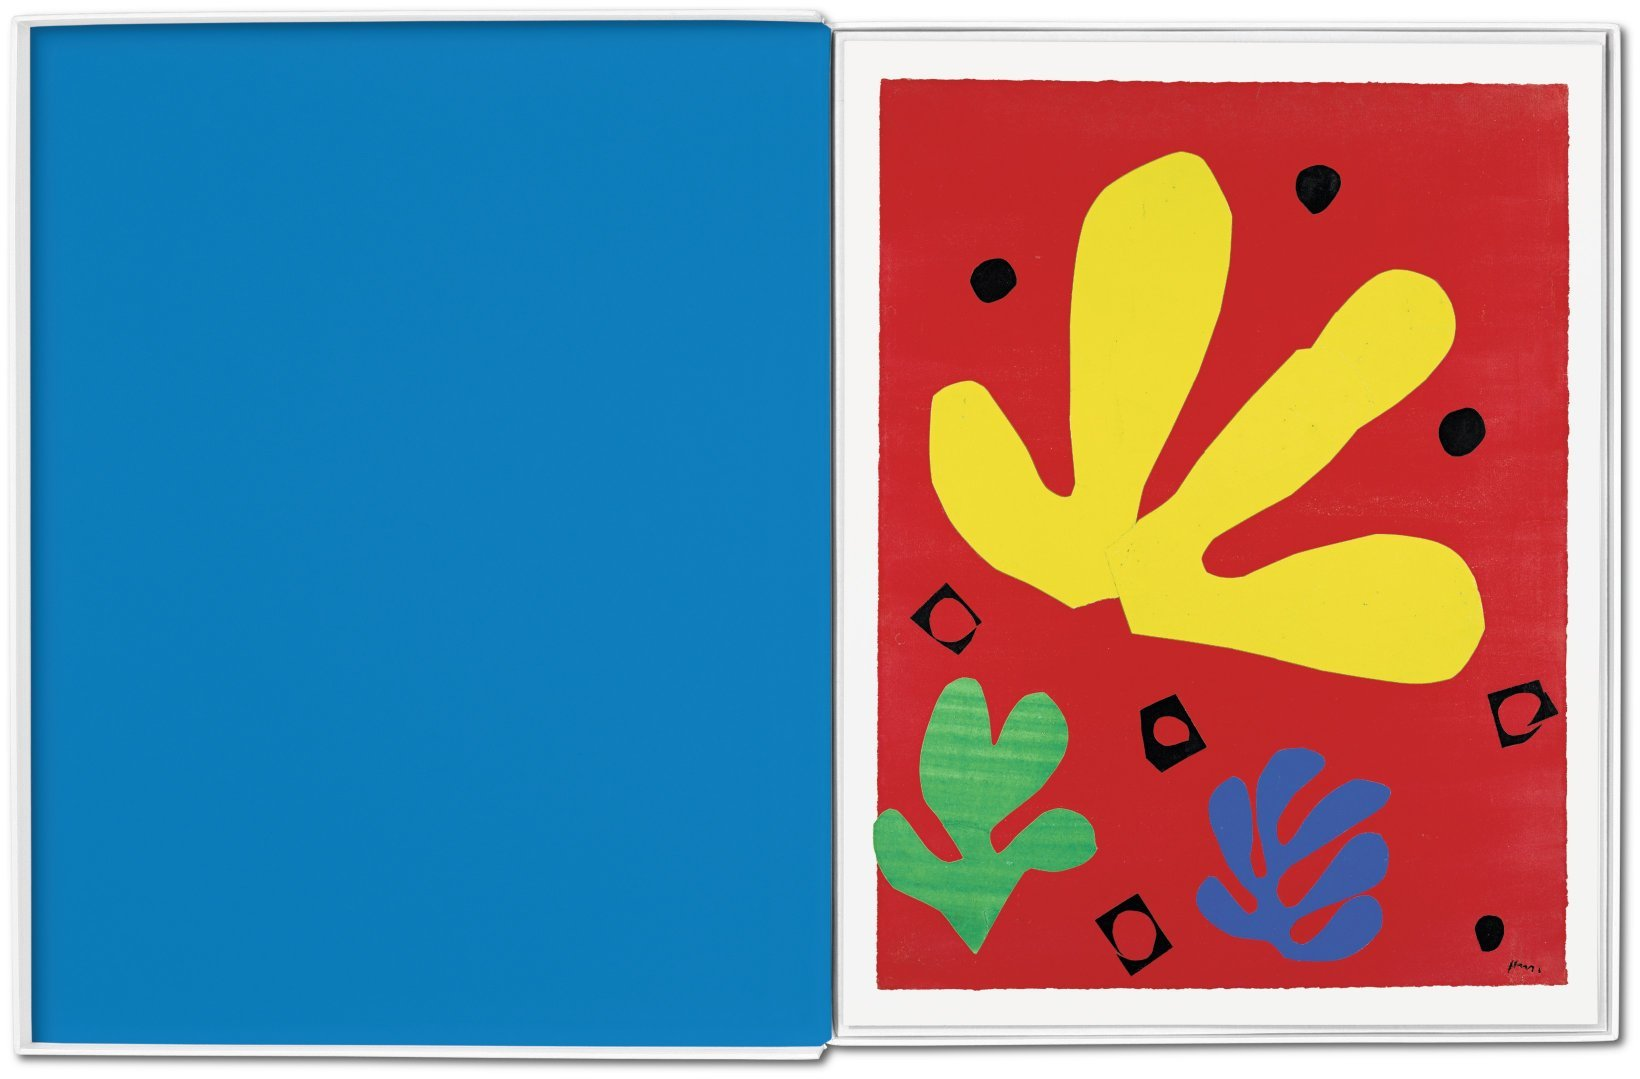 60b396a9500 Poster Set - image 3 · Matisse. Cut-Outs. Poster Set - image 4 ...